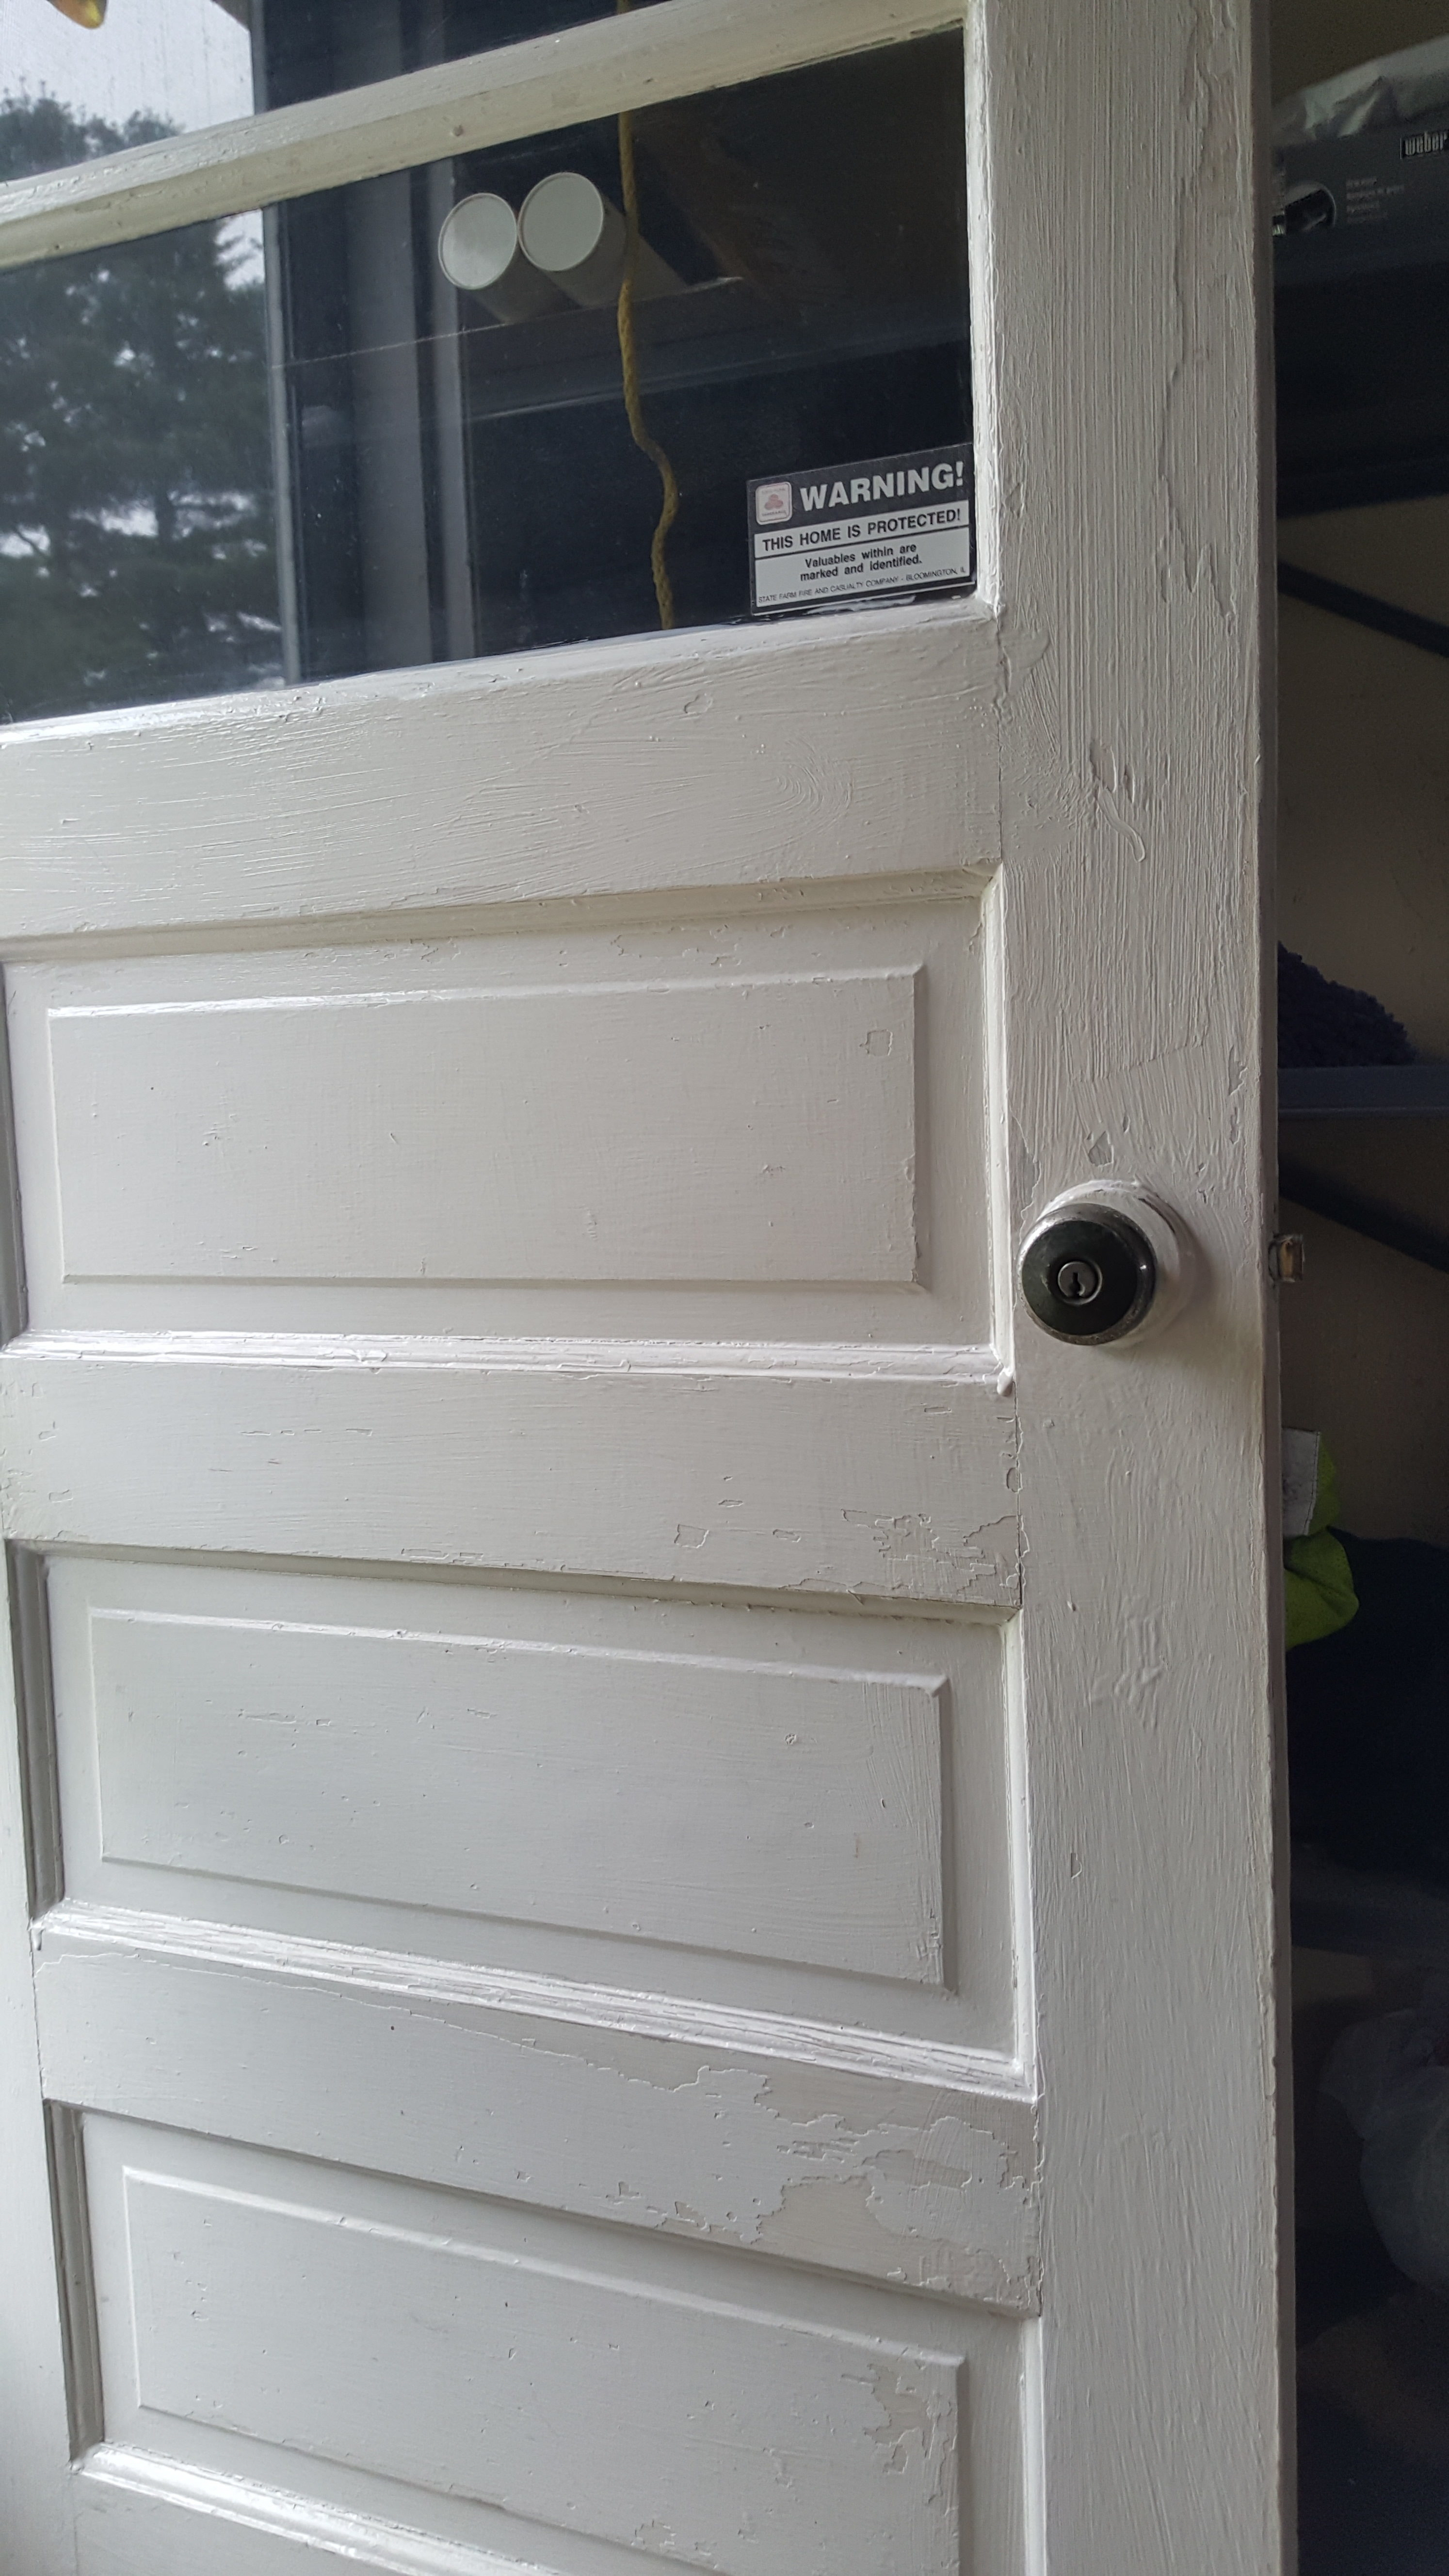 Tried To Paint My Exterior Windows Thought It Was The Caulking I Put On Then Went To Paint My Garage Exterior Door Sanded It Cleaned It